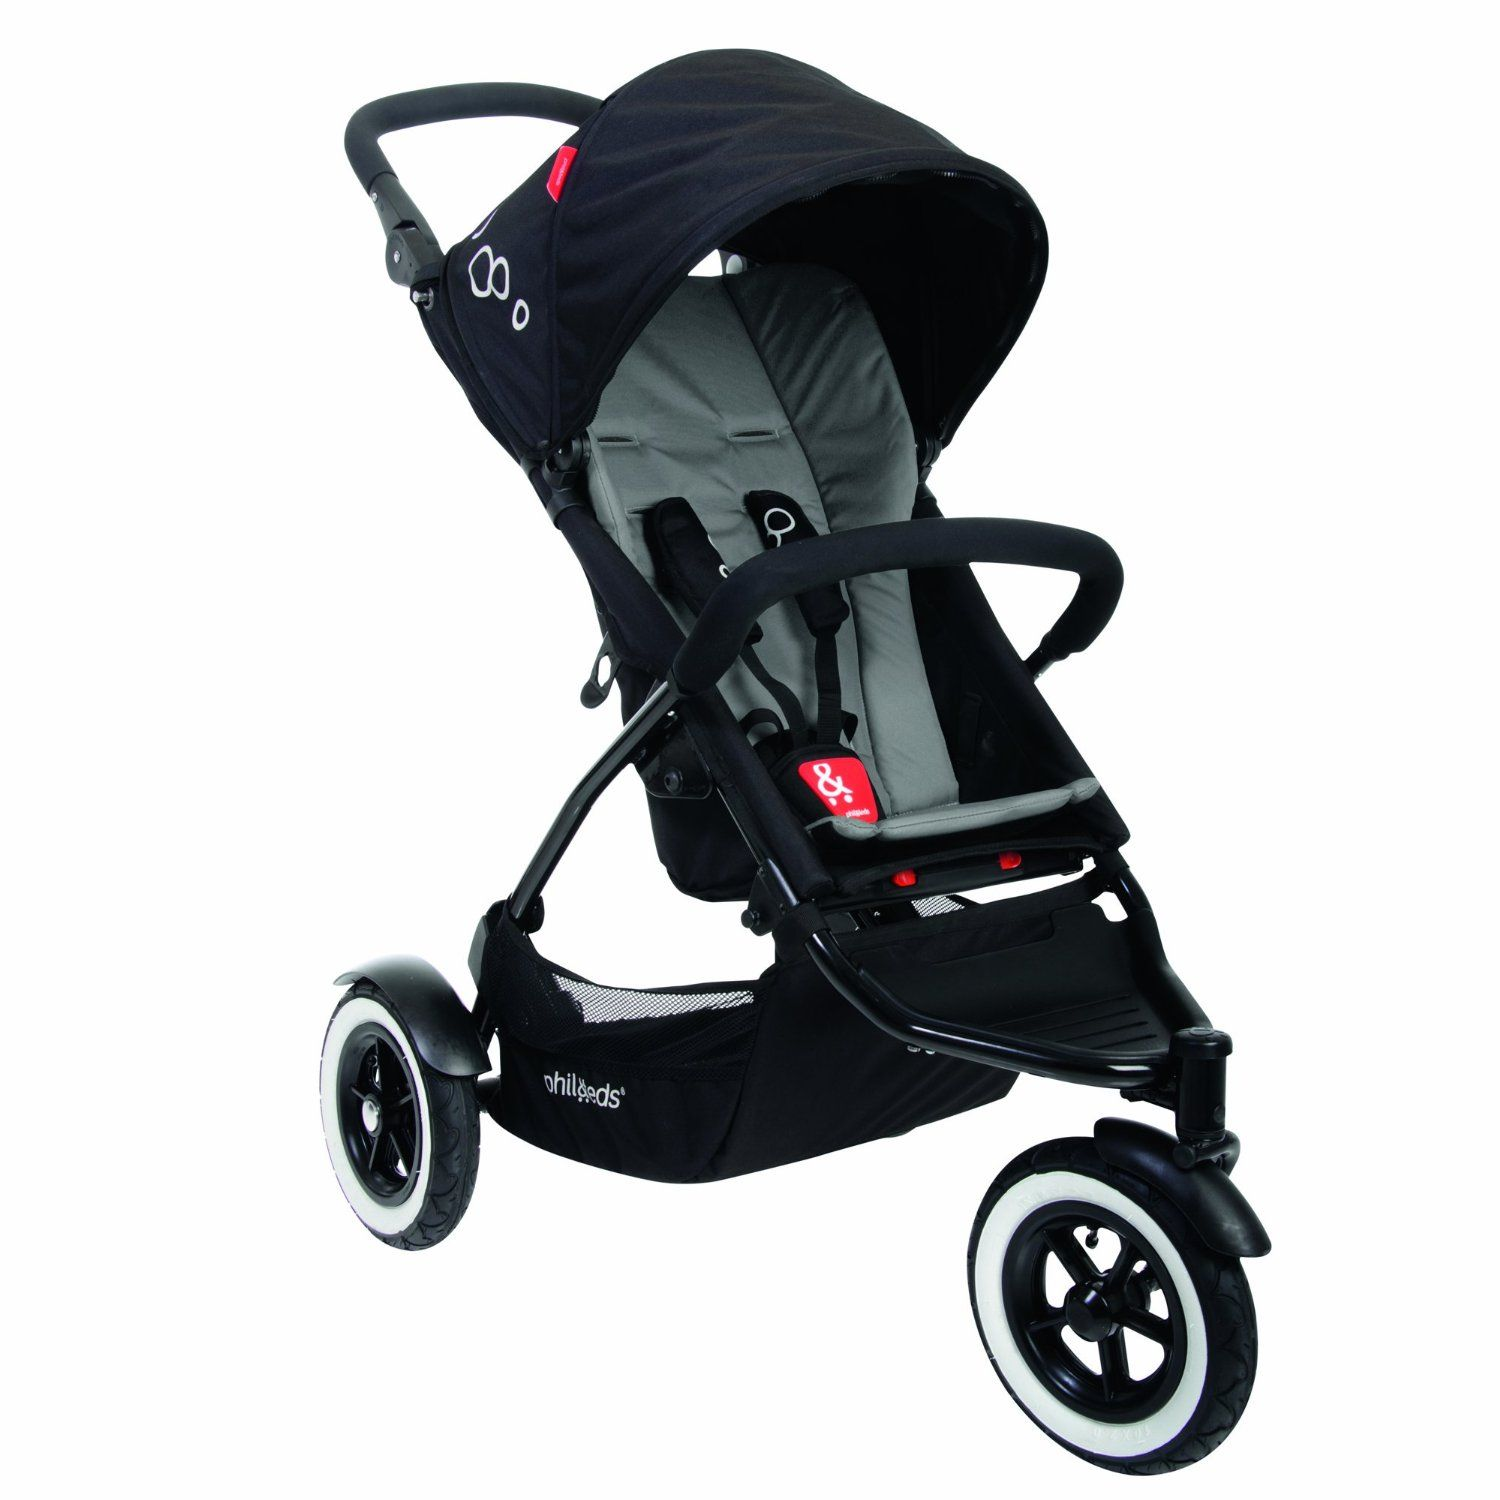 Amazon.com : phil&teds Dot Buggy Stroller, Flint : Infant Car Seat Stroller Travel Systems : Baby